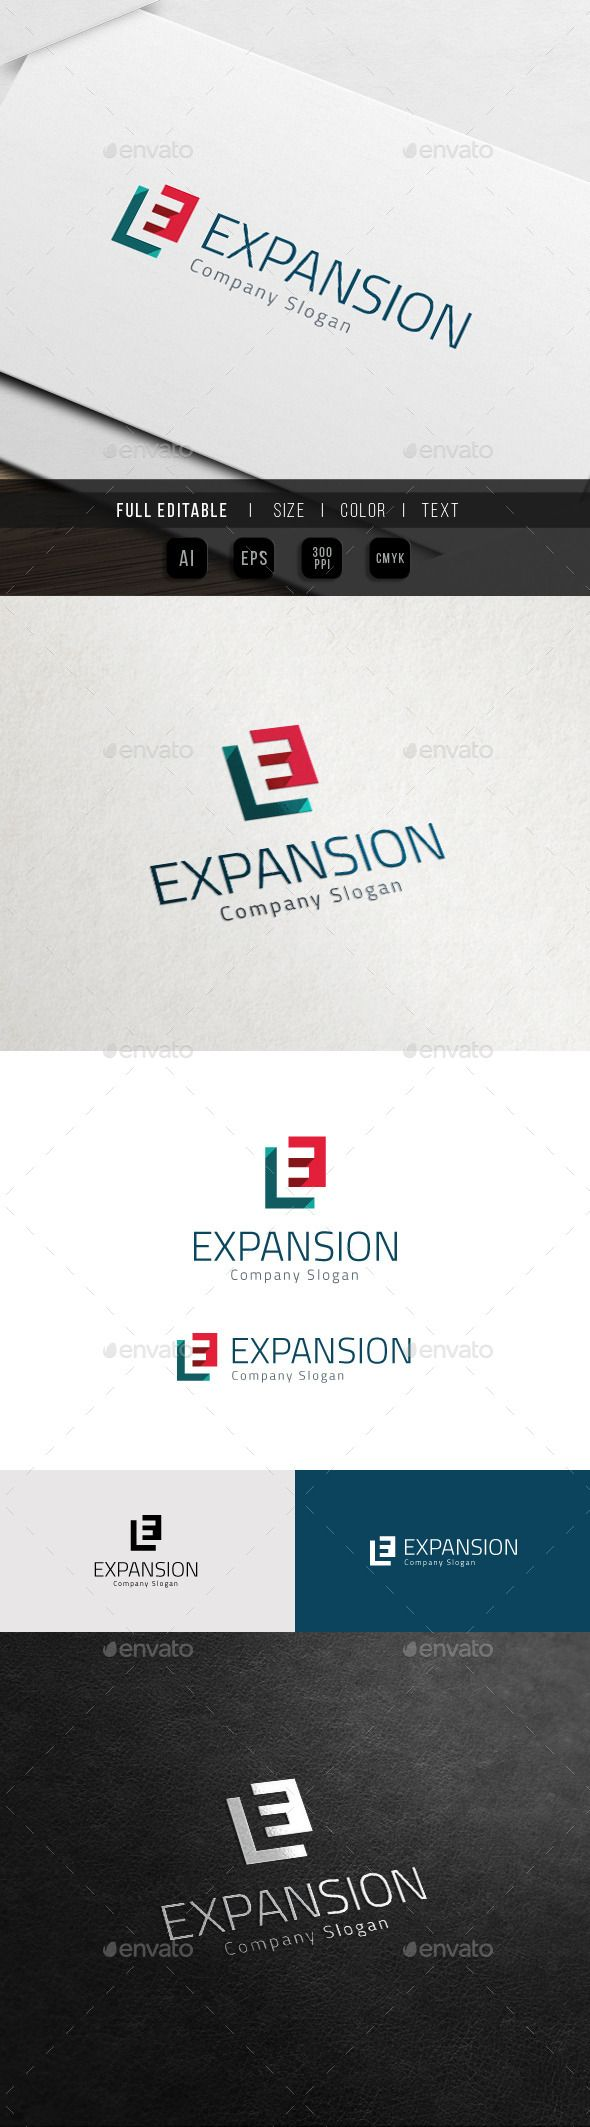 Ex Media  Marketing and Finance  E logo — Vector EPS #property #expansion • Available here → https://graphicriver.net/item/ex-media-marketing-and-finance-e-logo/11482110?ref=pxcr